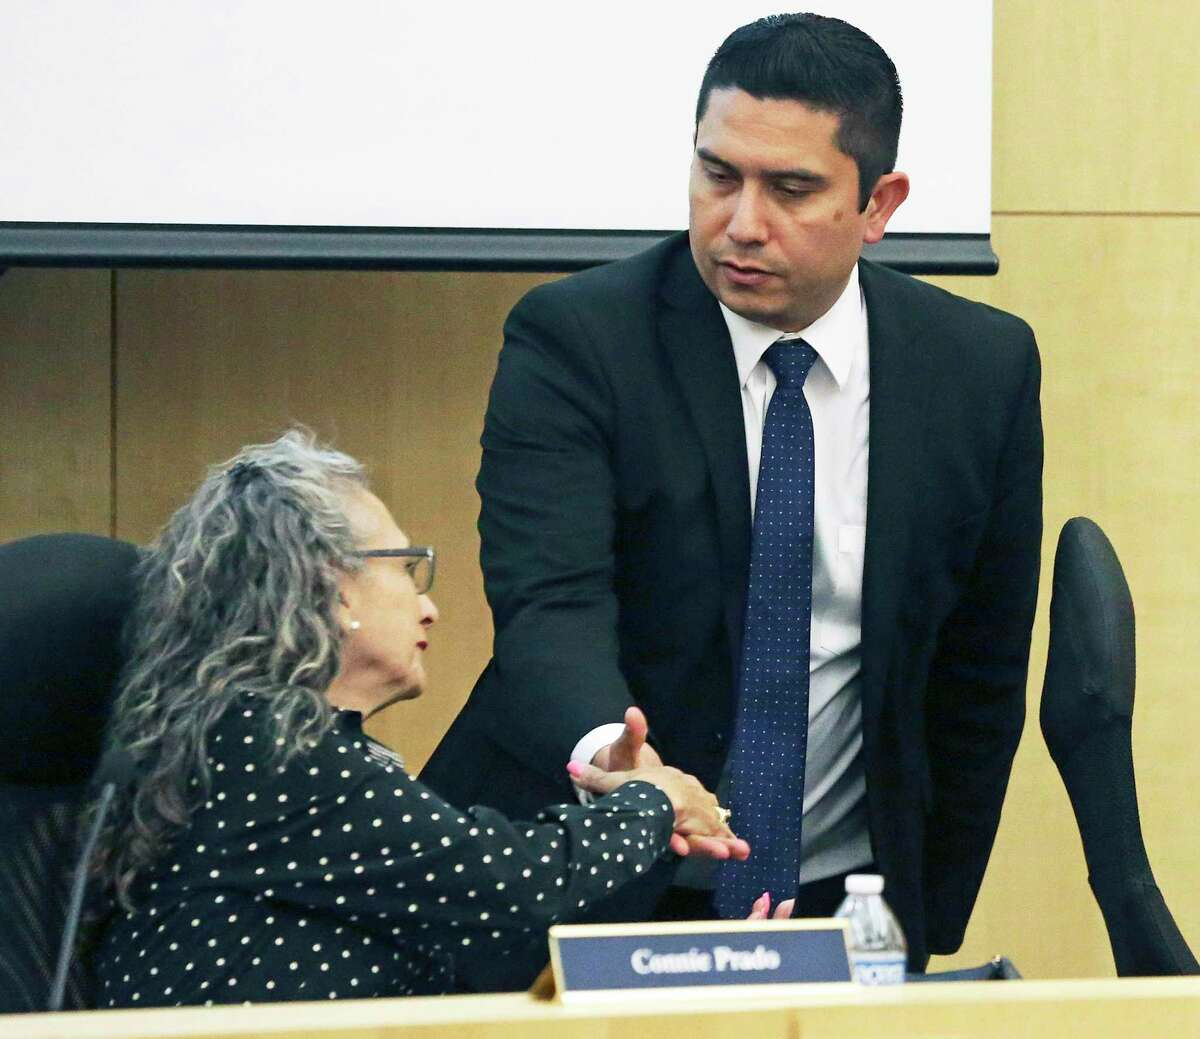 Former South San ISD superintendent Alex Flores shakes hands with Board President Connie Prado just before taking a buyout. South San has been plagued by governance issues, but consolidation isn't the solution. School finance reform is a better solution.